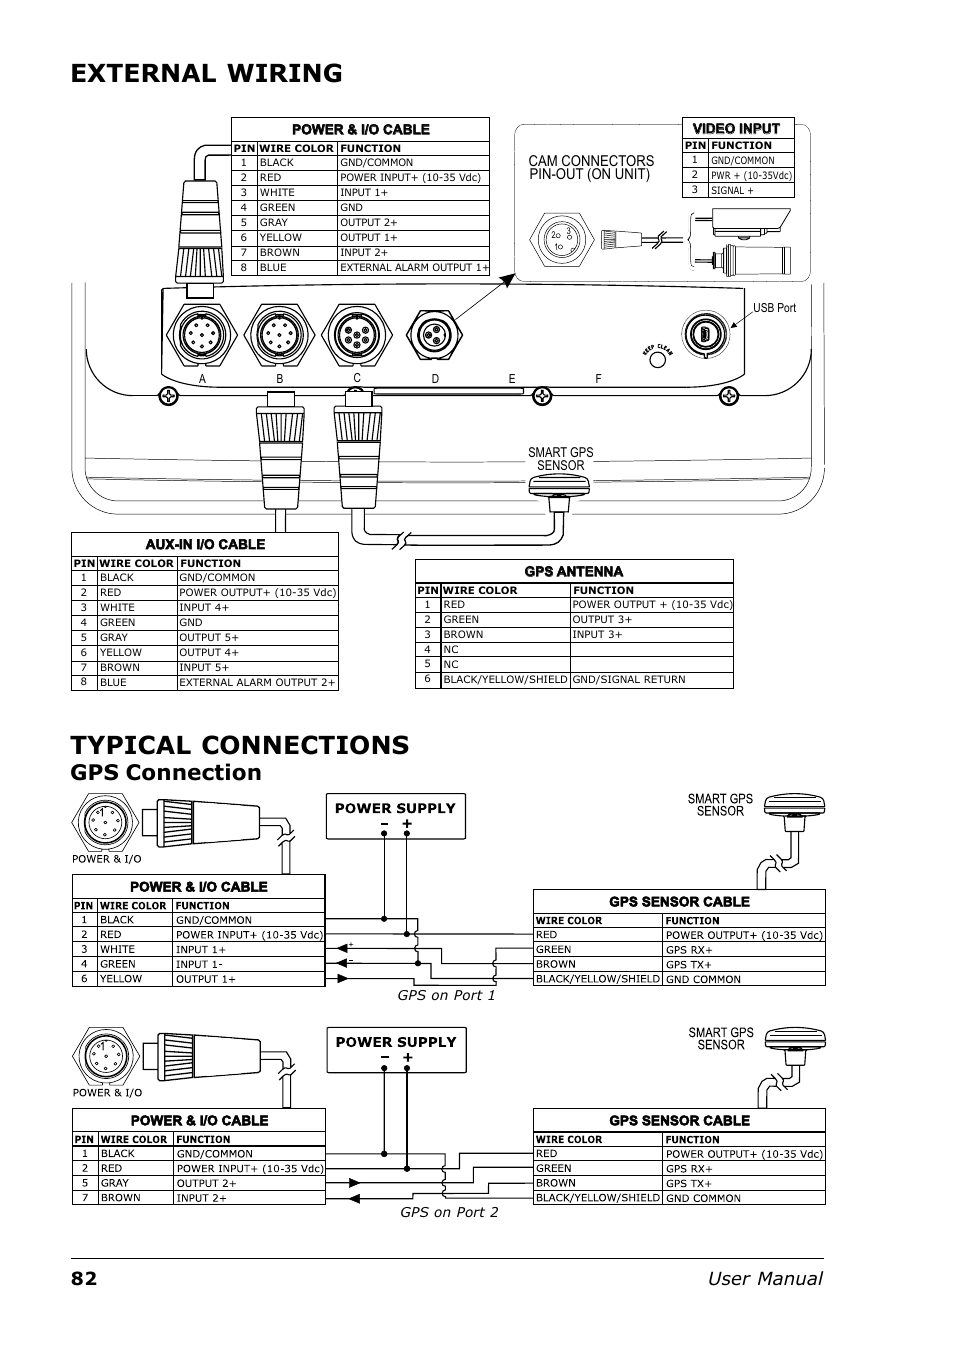 External wiring, Typical connections, Gps connection | Seiwa Tigershark  Plus User Manual | Page 80 / 109